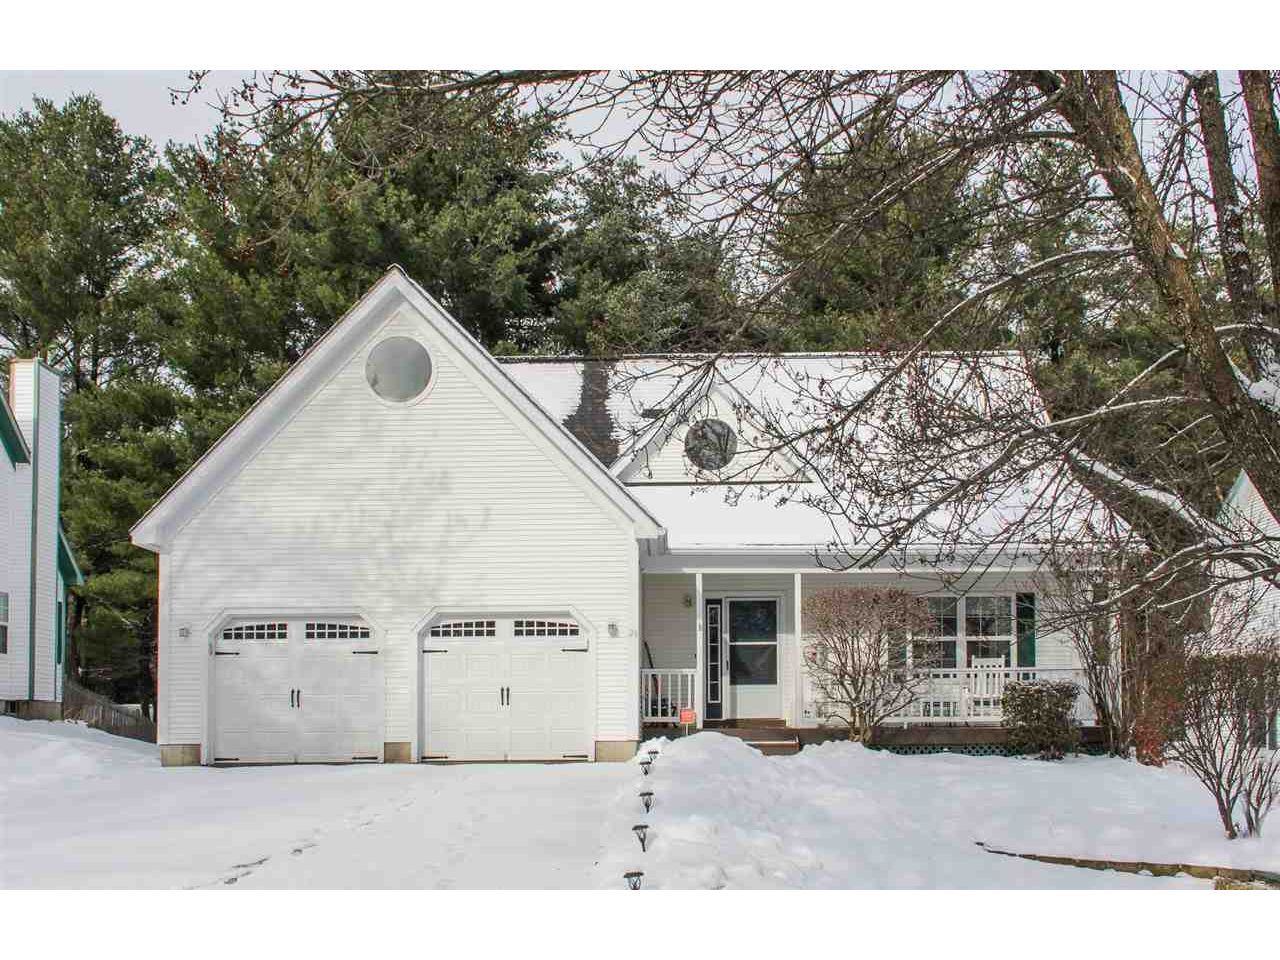 29 Lupine Lane, South Burlington